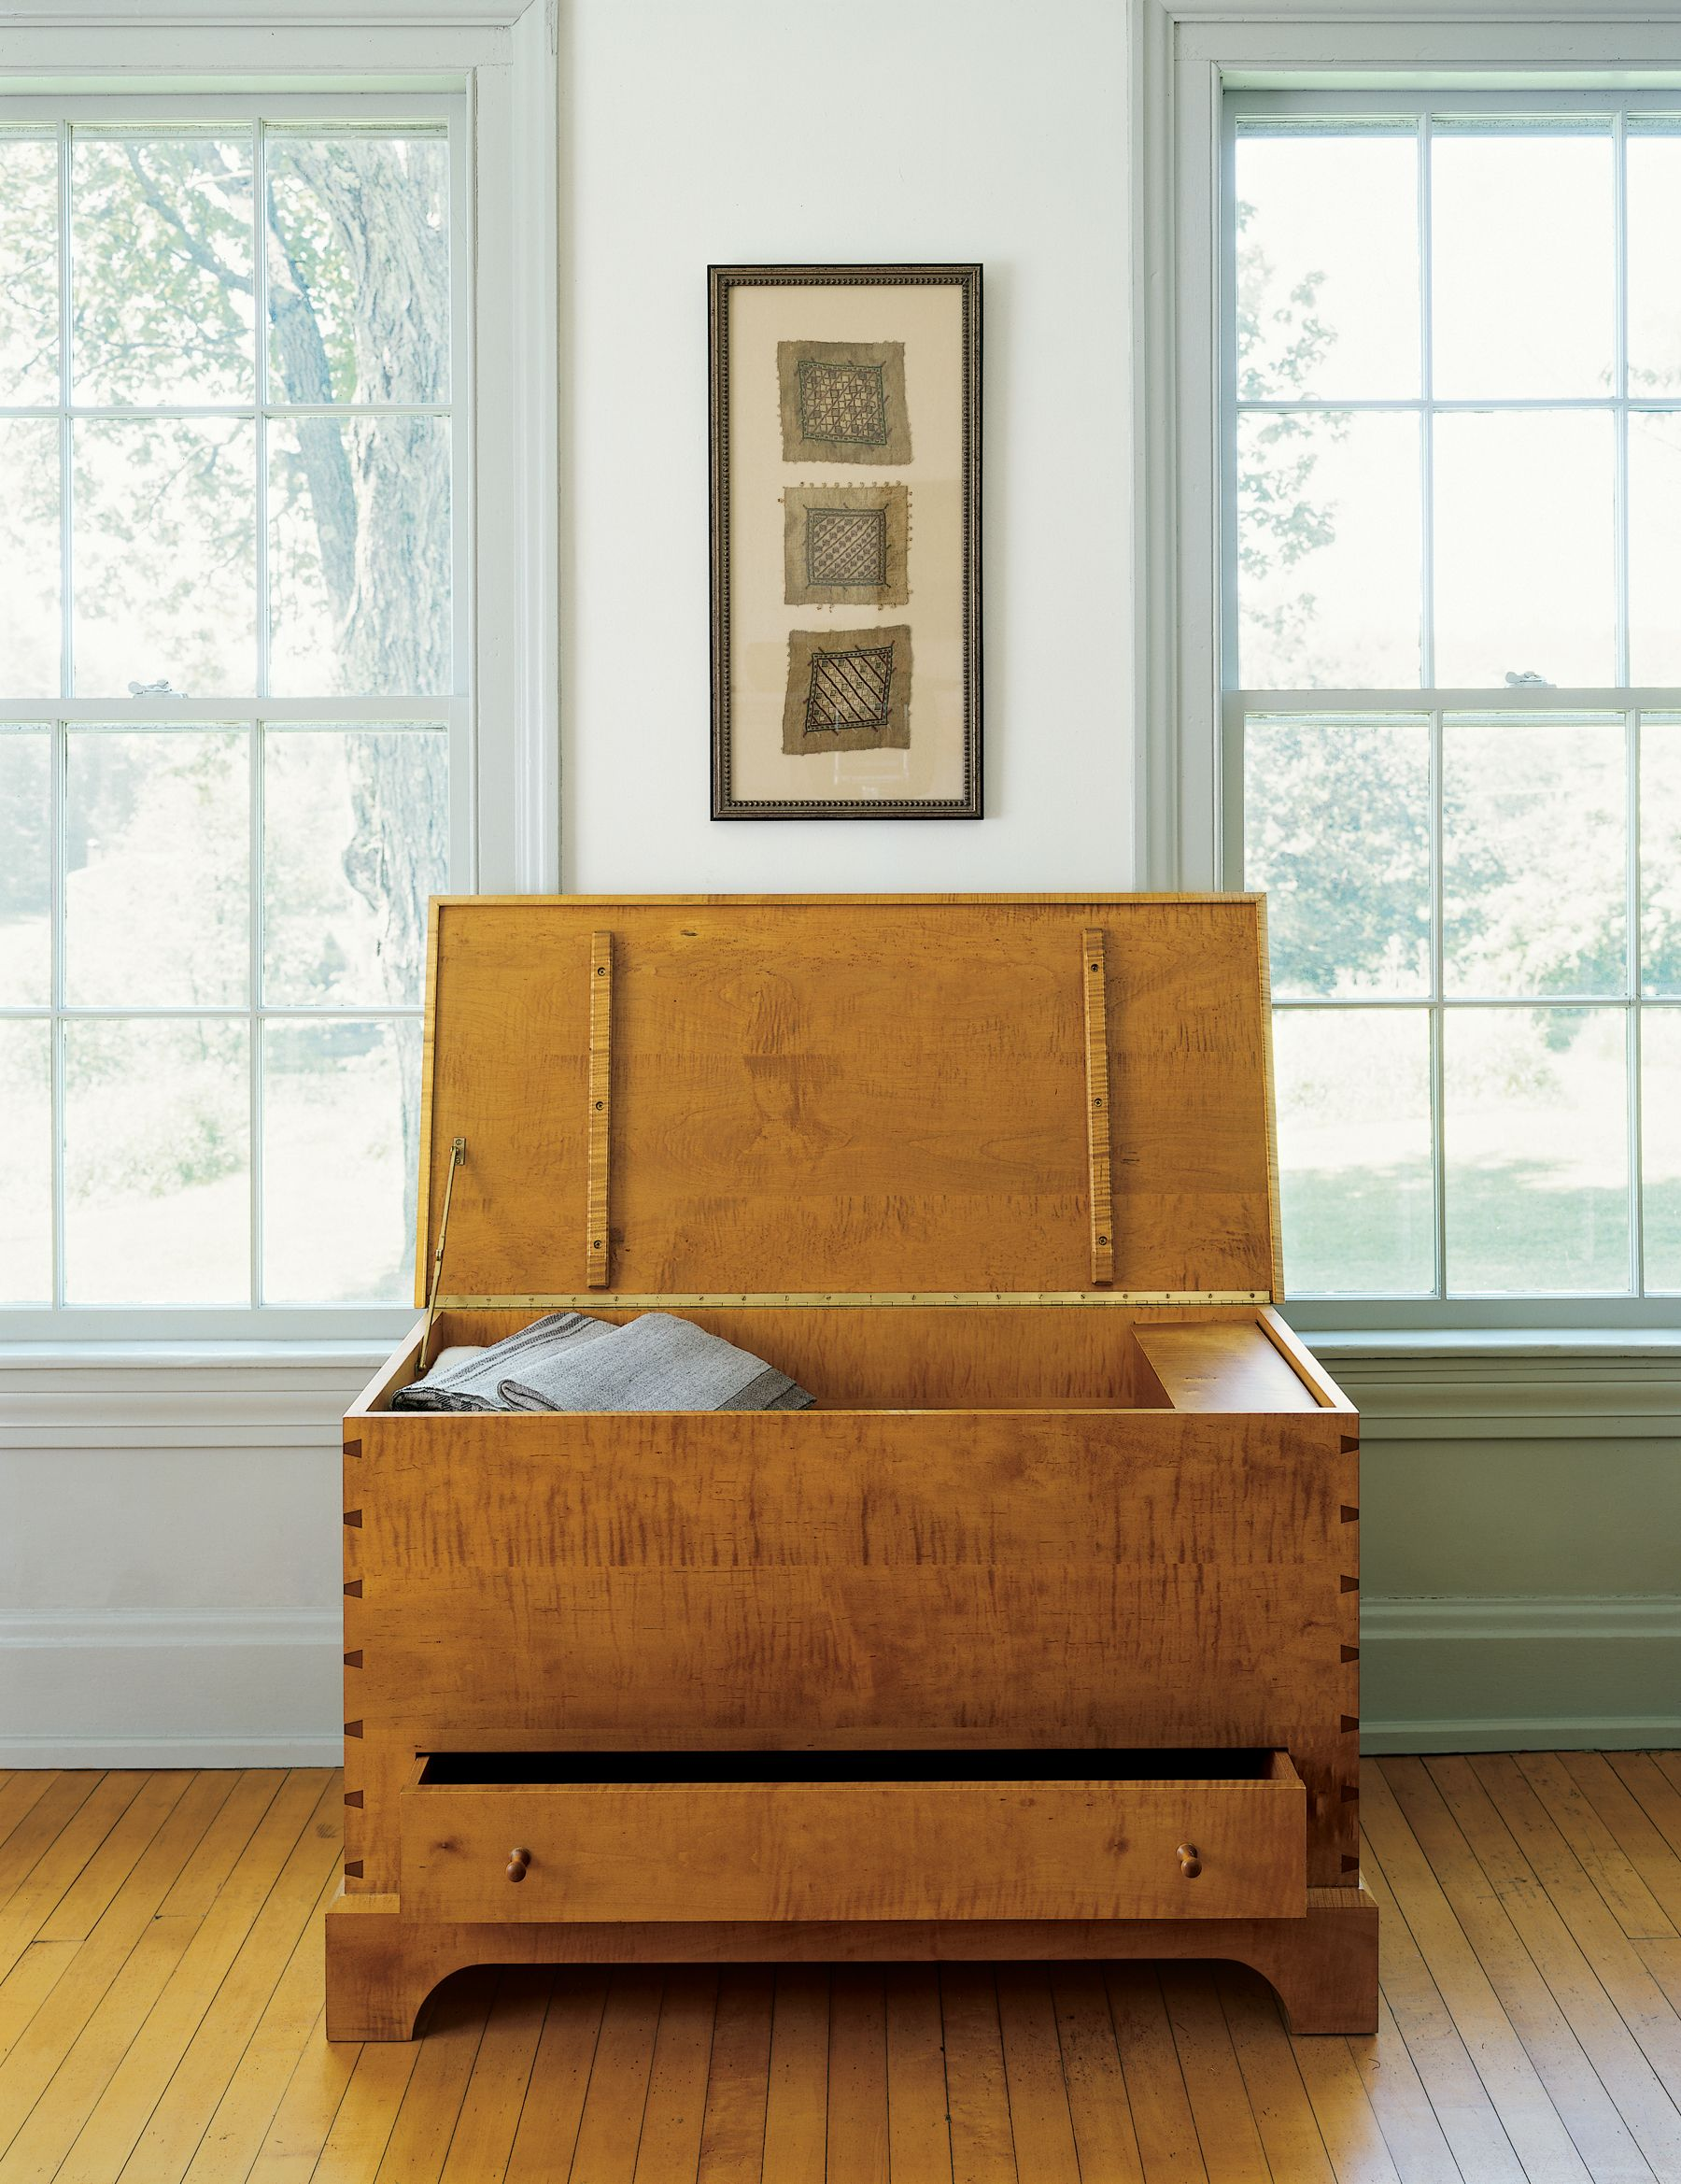 BLANKET BOX by Thos. Moser | This contemporary version of a country classic is one of our #MoserFavs and makes a great future family #heirloom to fill with family treasures: http://www.thosmoser.com/product/198/blanket_box/